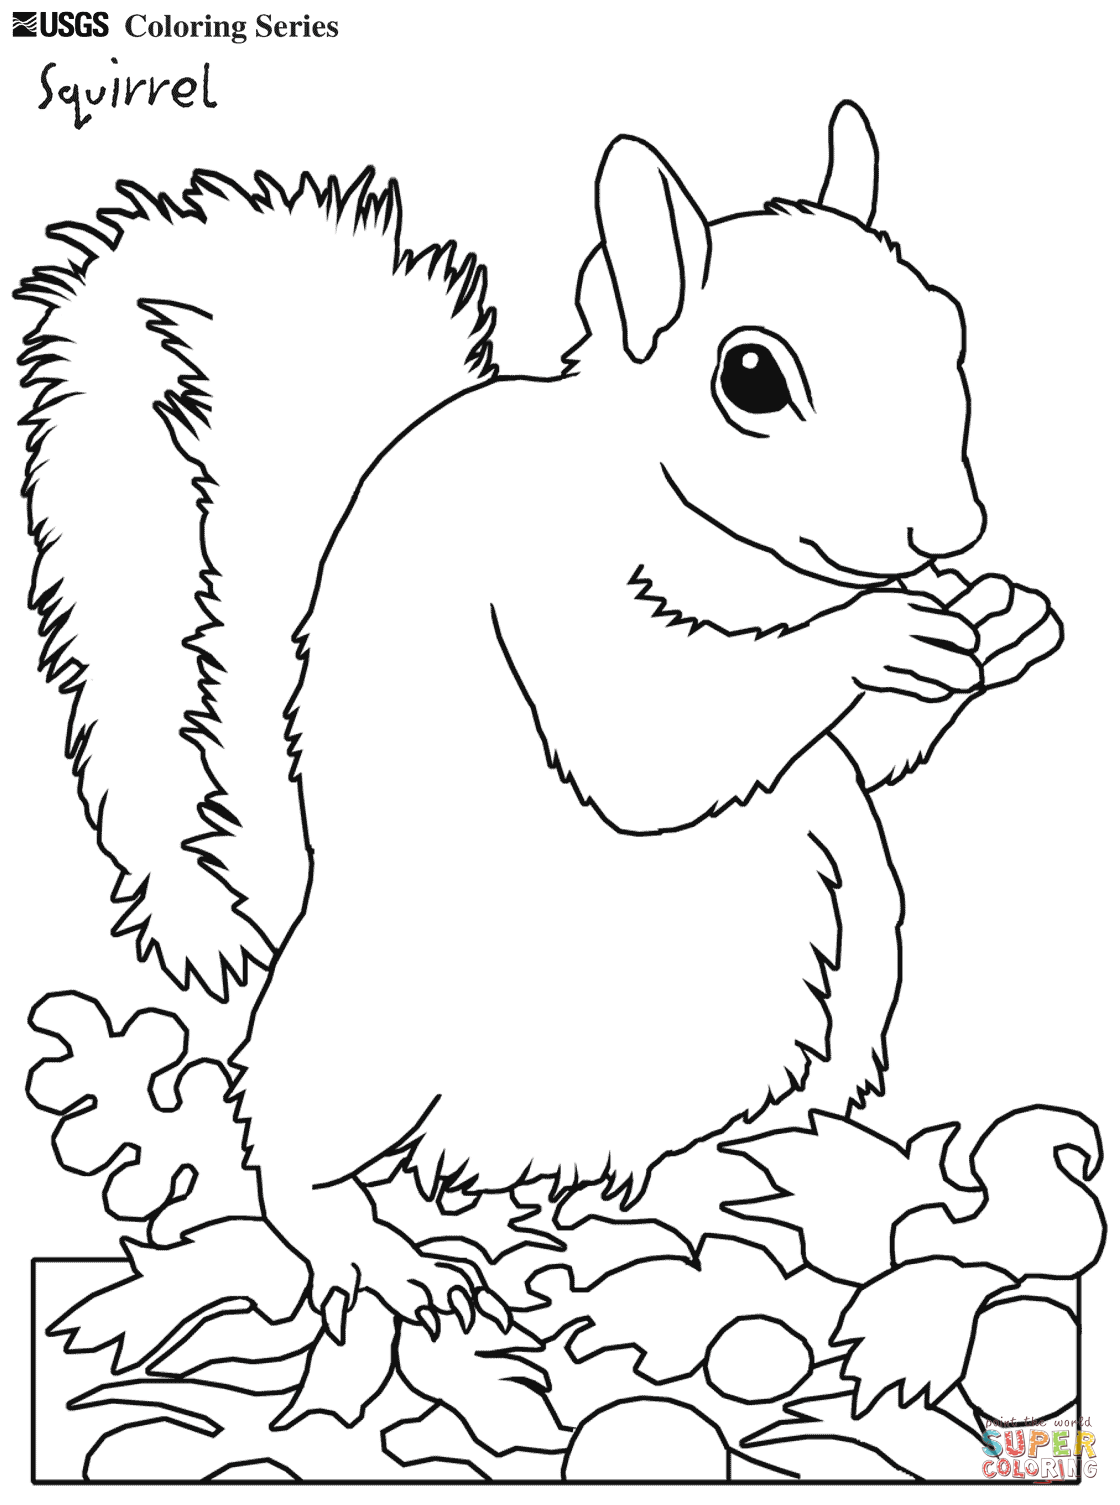 Gray Squirrel coloring #11, Download drawings